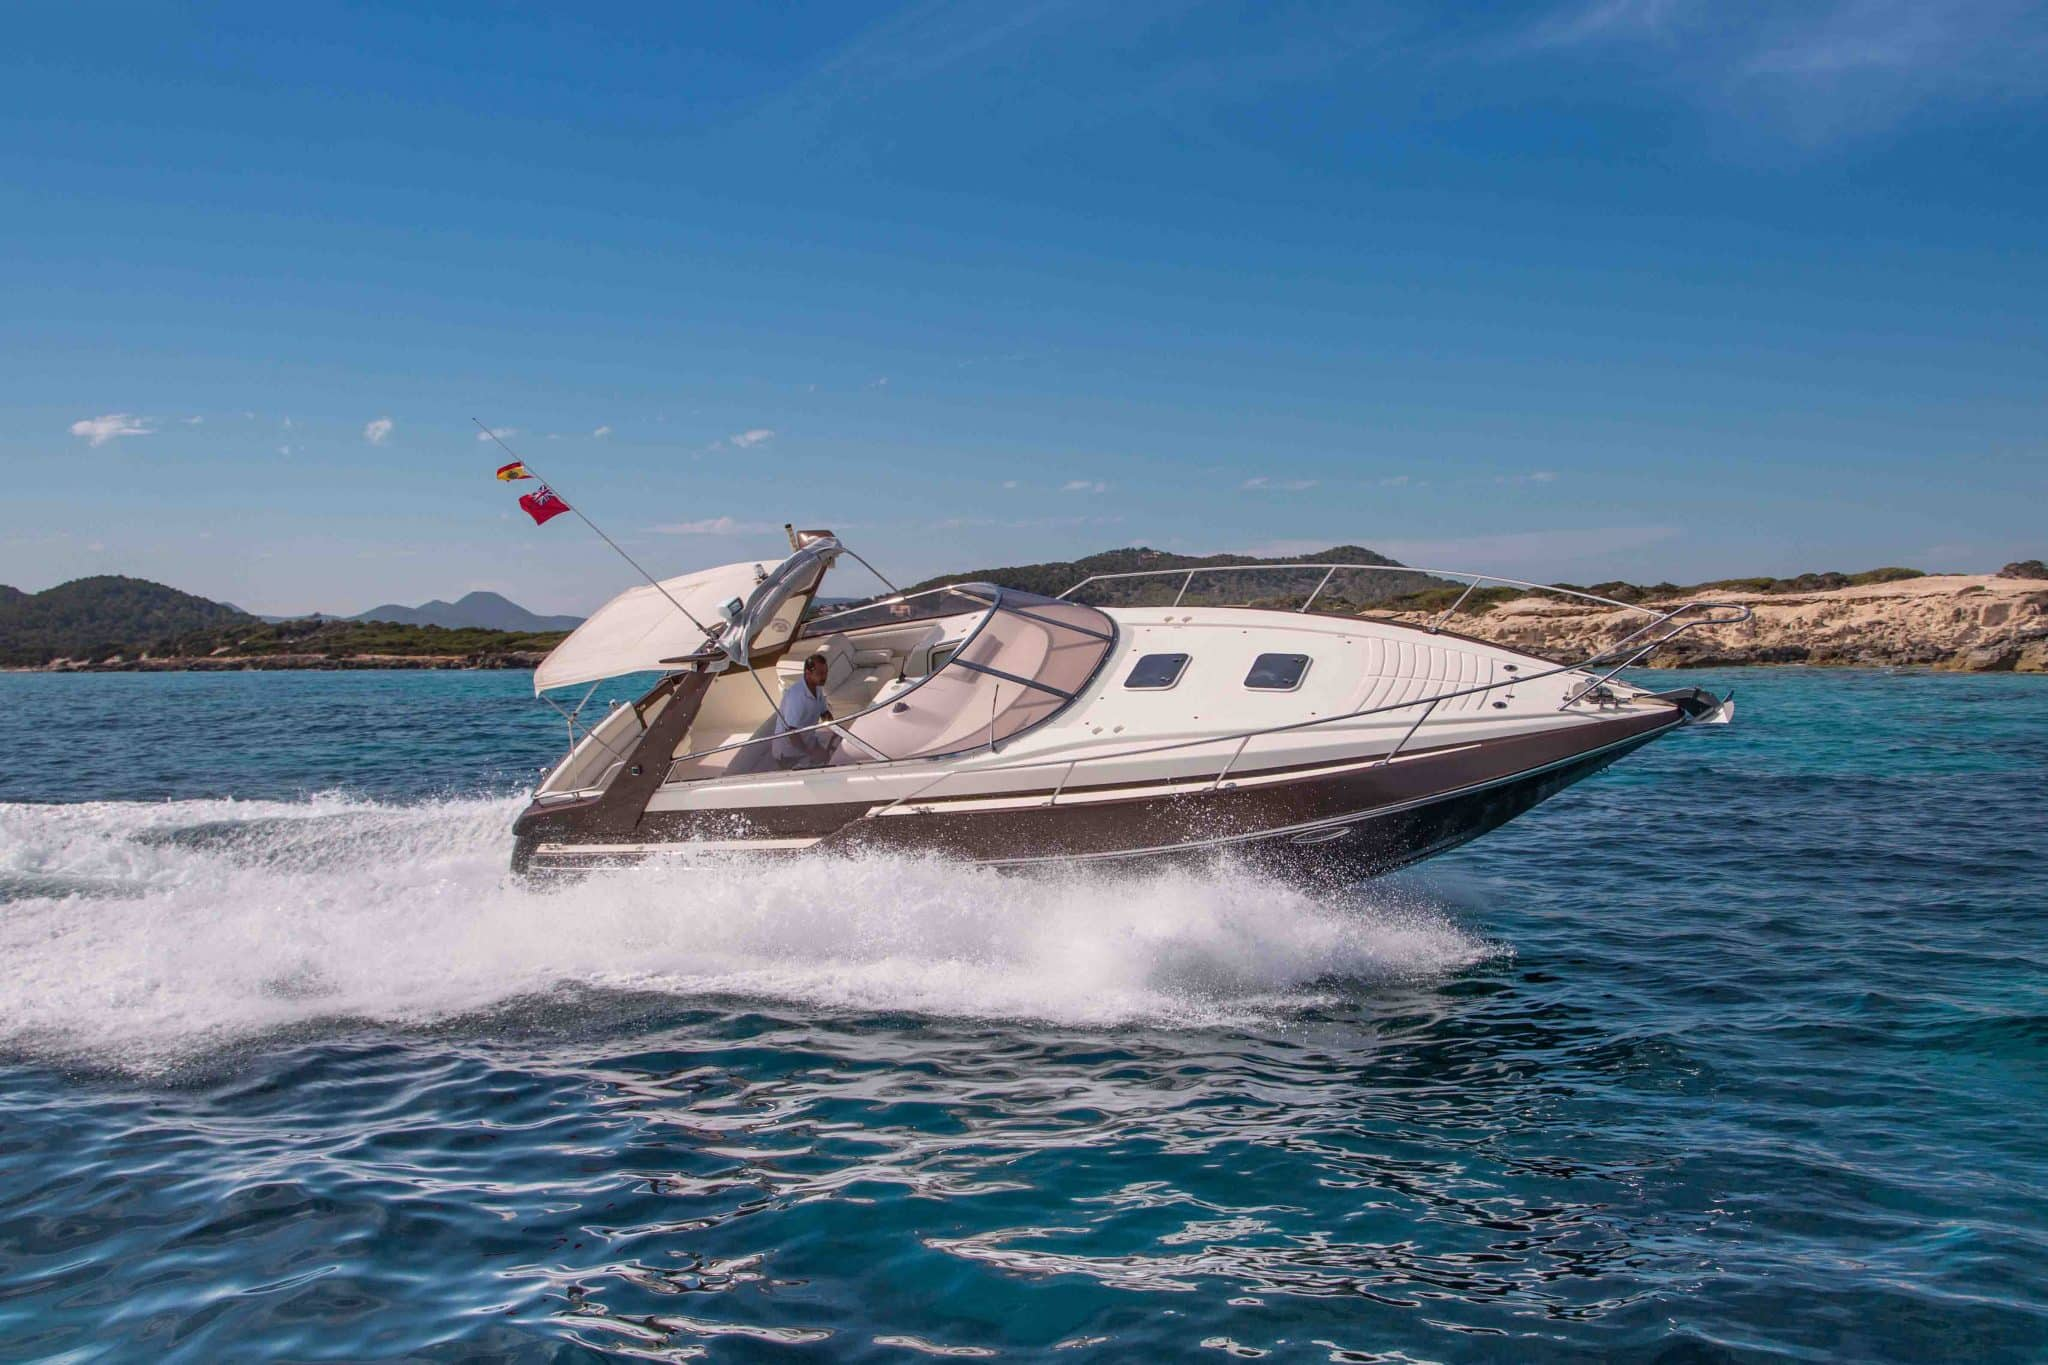 The Sunseeker San Remo 35 cruising at high speed in Salinas